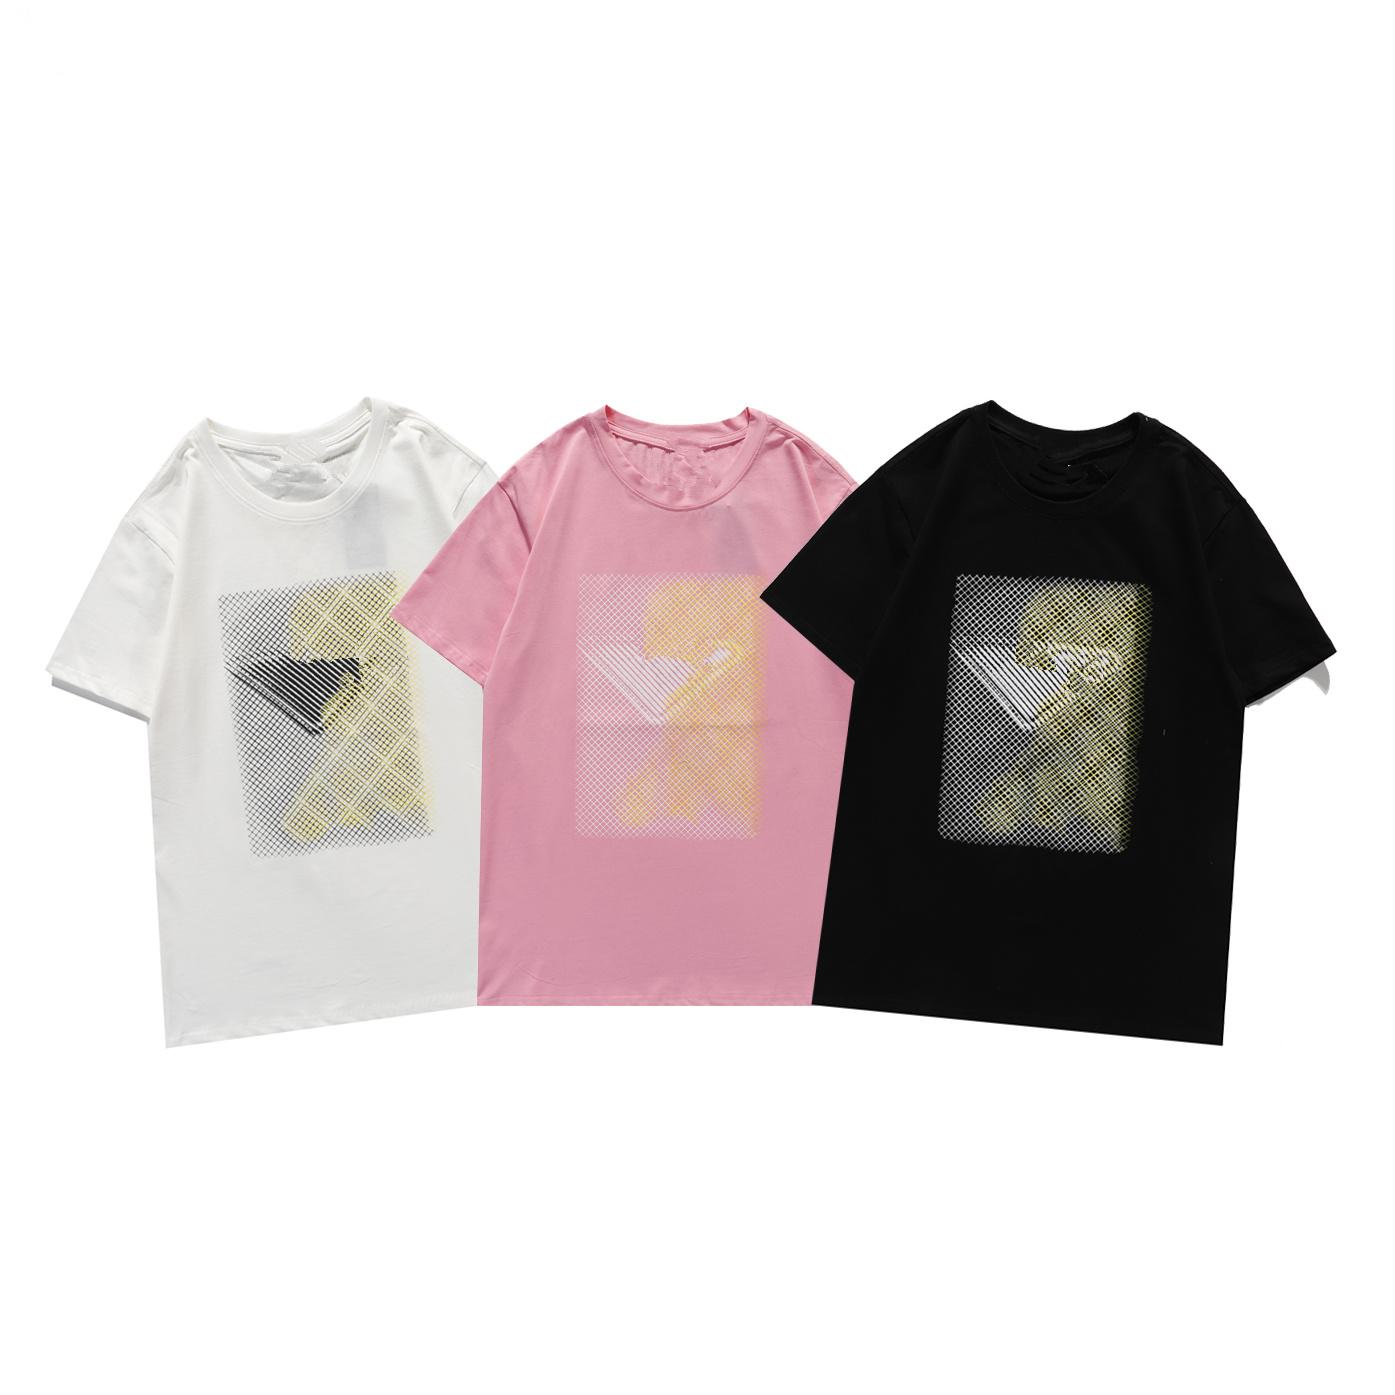 2021 New 21SS Mens T Shirt High Quality Men Women Couples Casual Short Sleeve Mens Round Neck Tees 5 Colors S-5XL